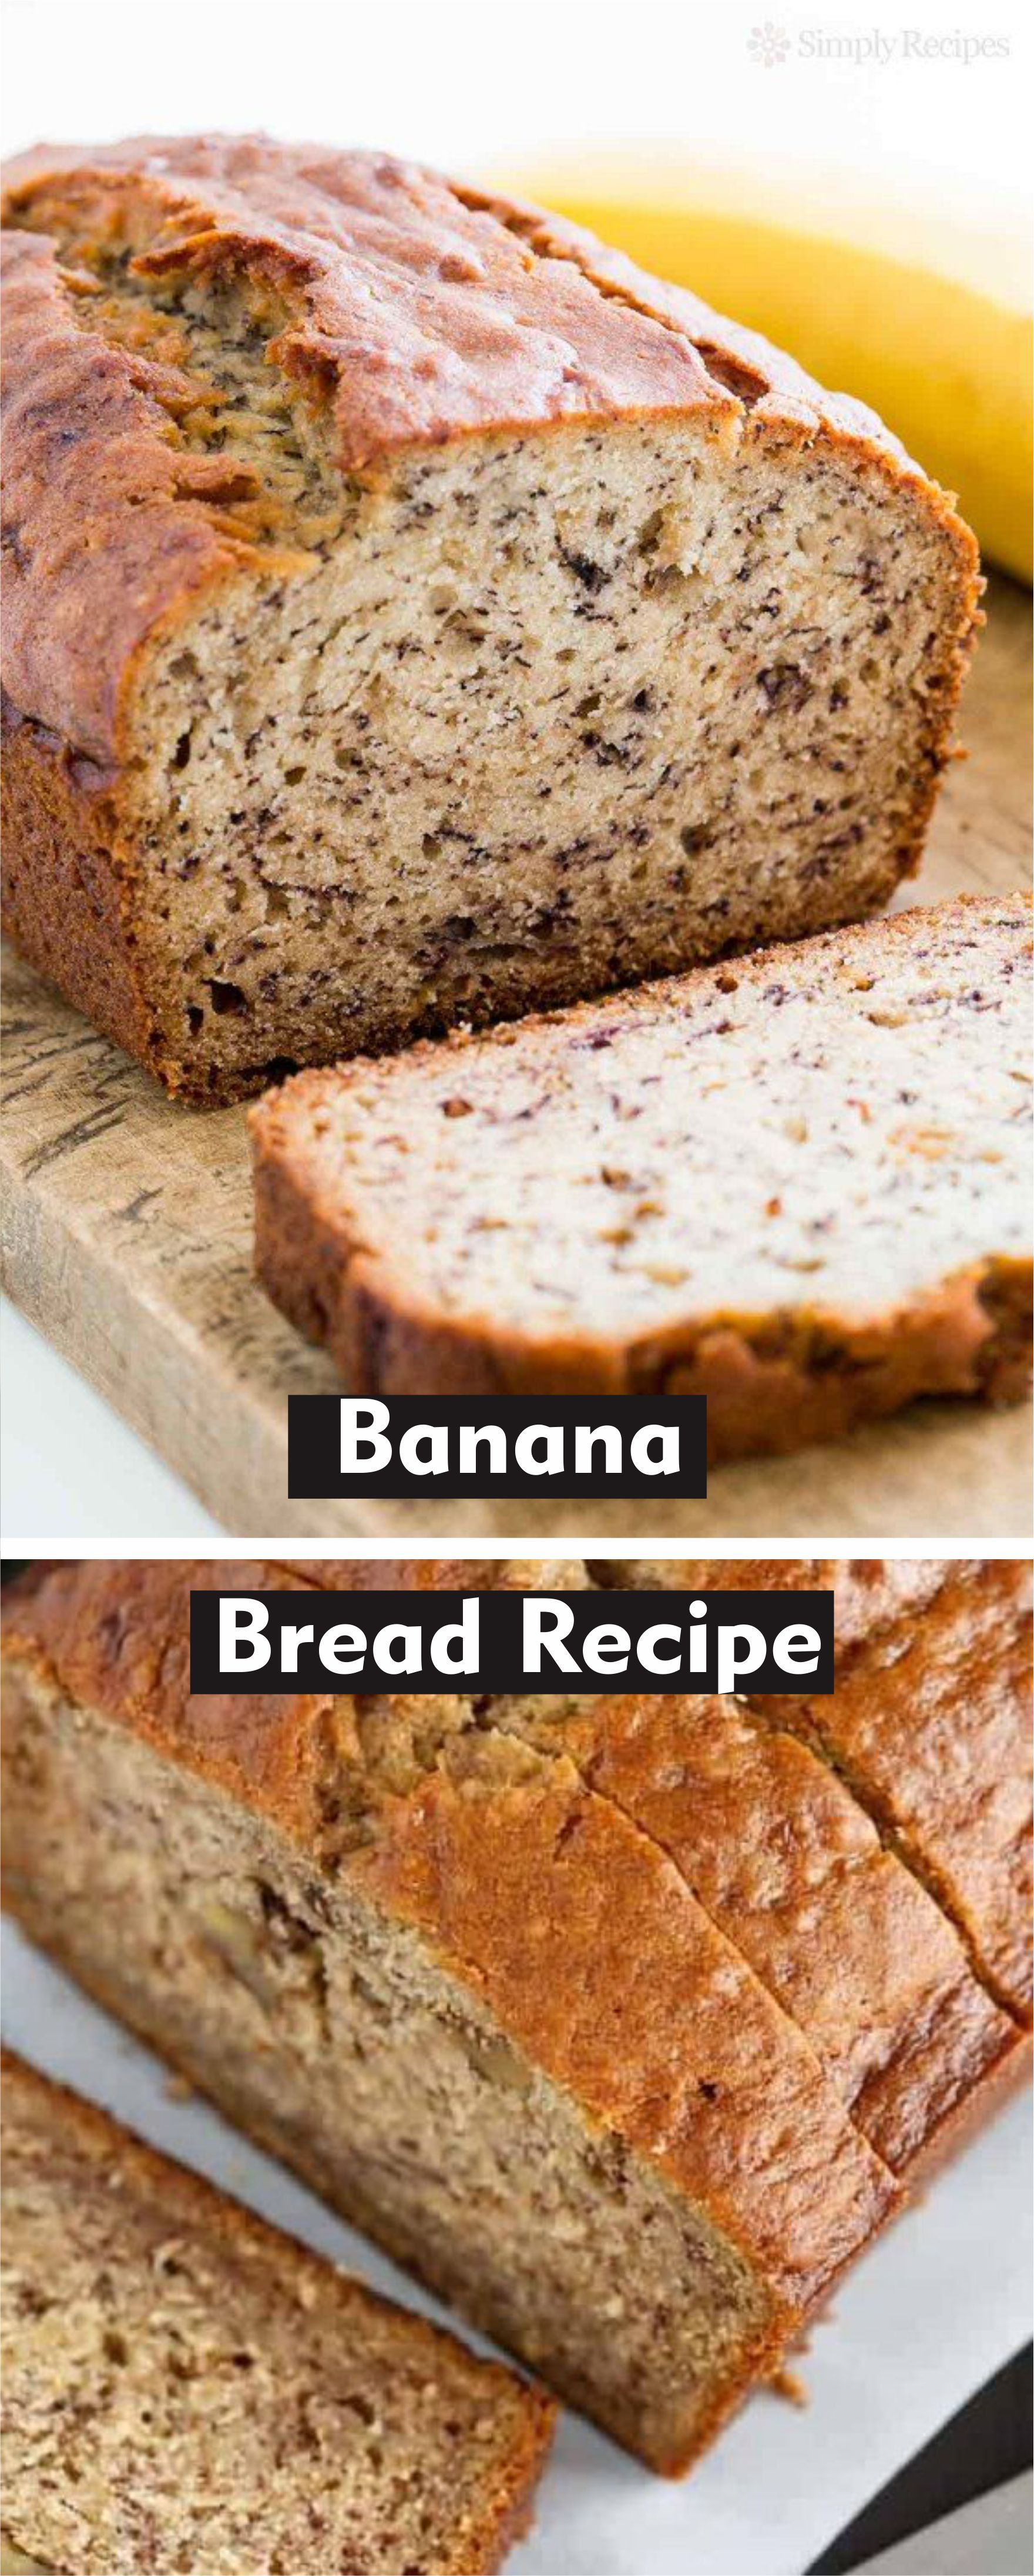 Banana Bread Recipe In 2020 Banana Bread Recipes Easy Baking Recipes Baking Recipes